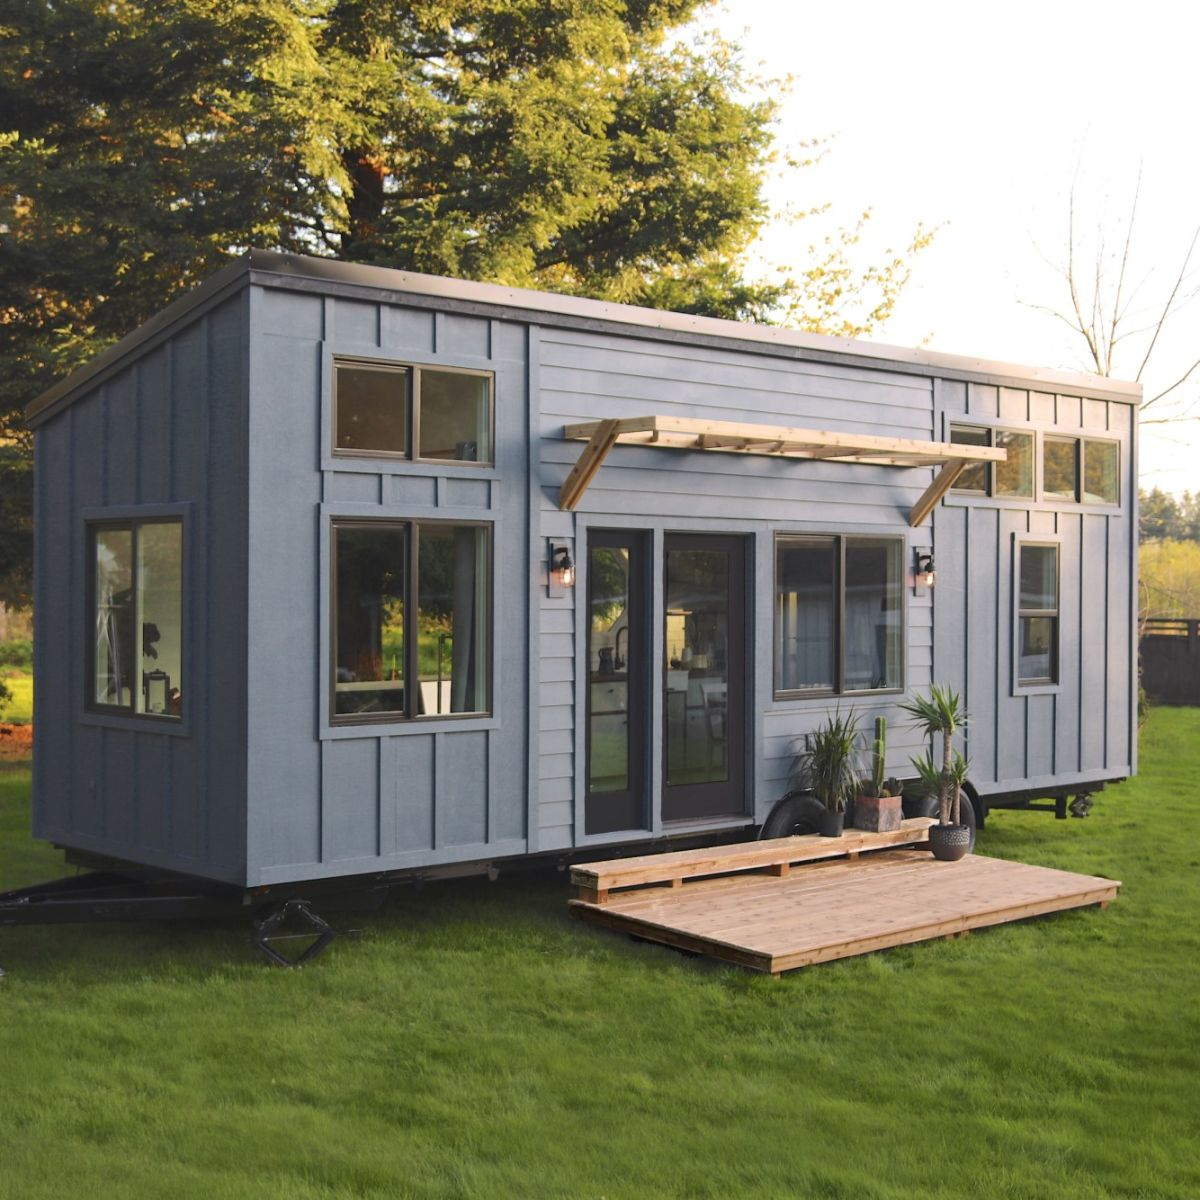 Houses For Rent Listings: Tiny Houses For Sale In Oregon